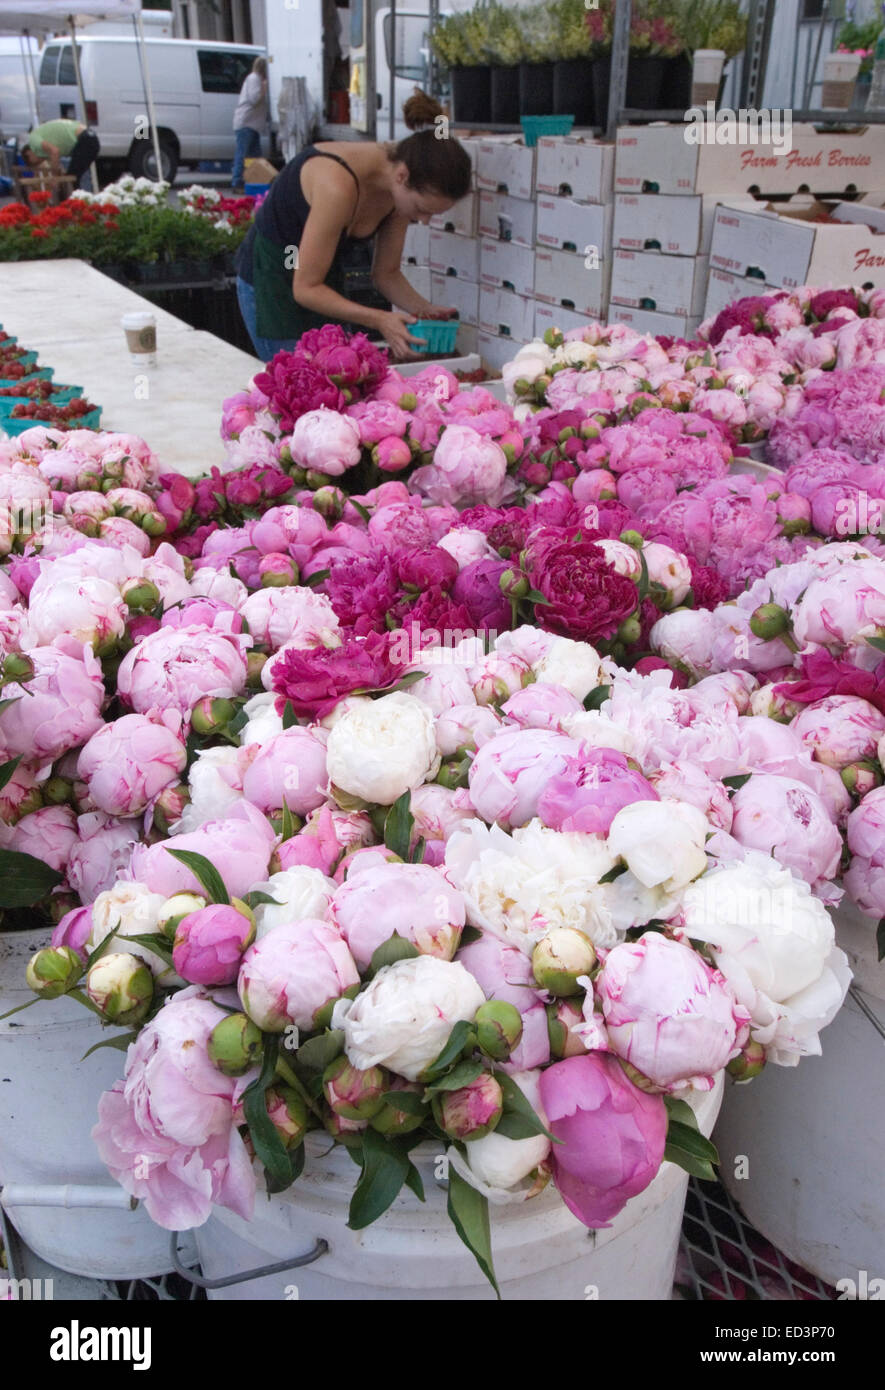 Peonies for sale at Union Square Market in New York City Stock Photo